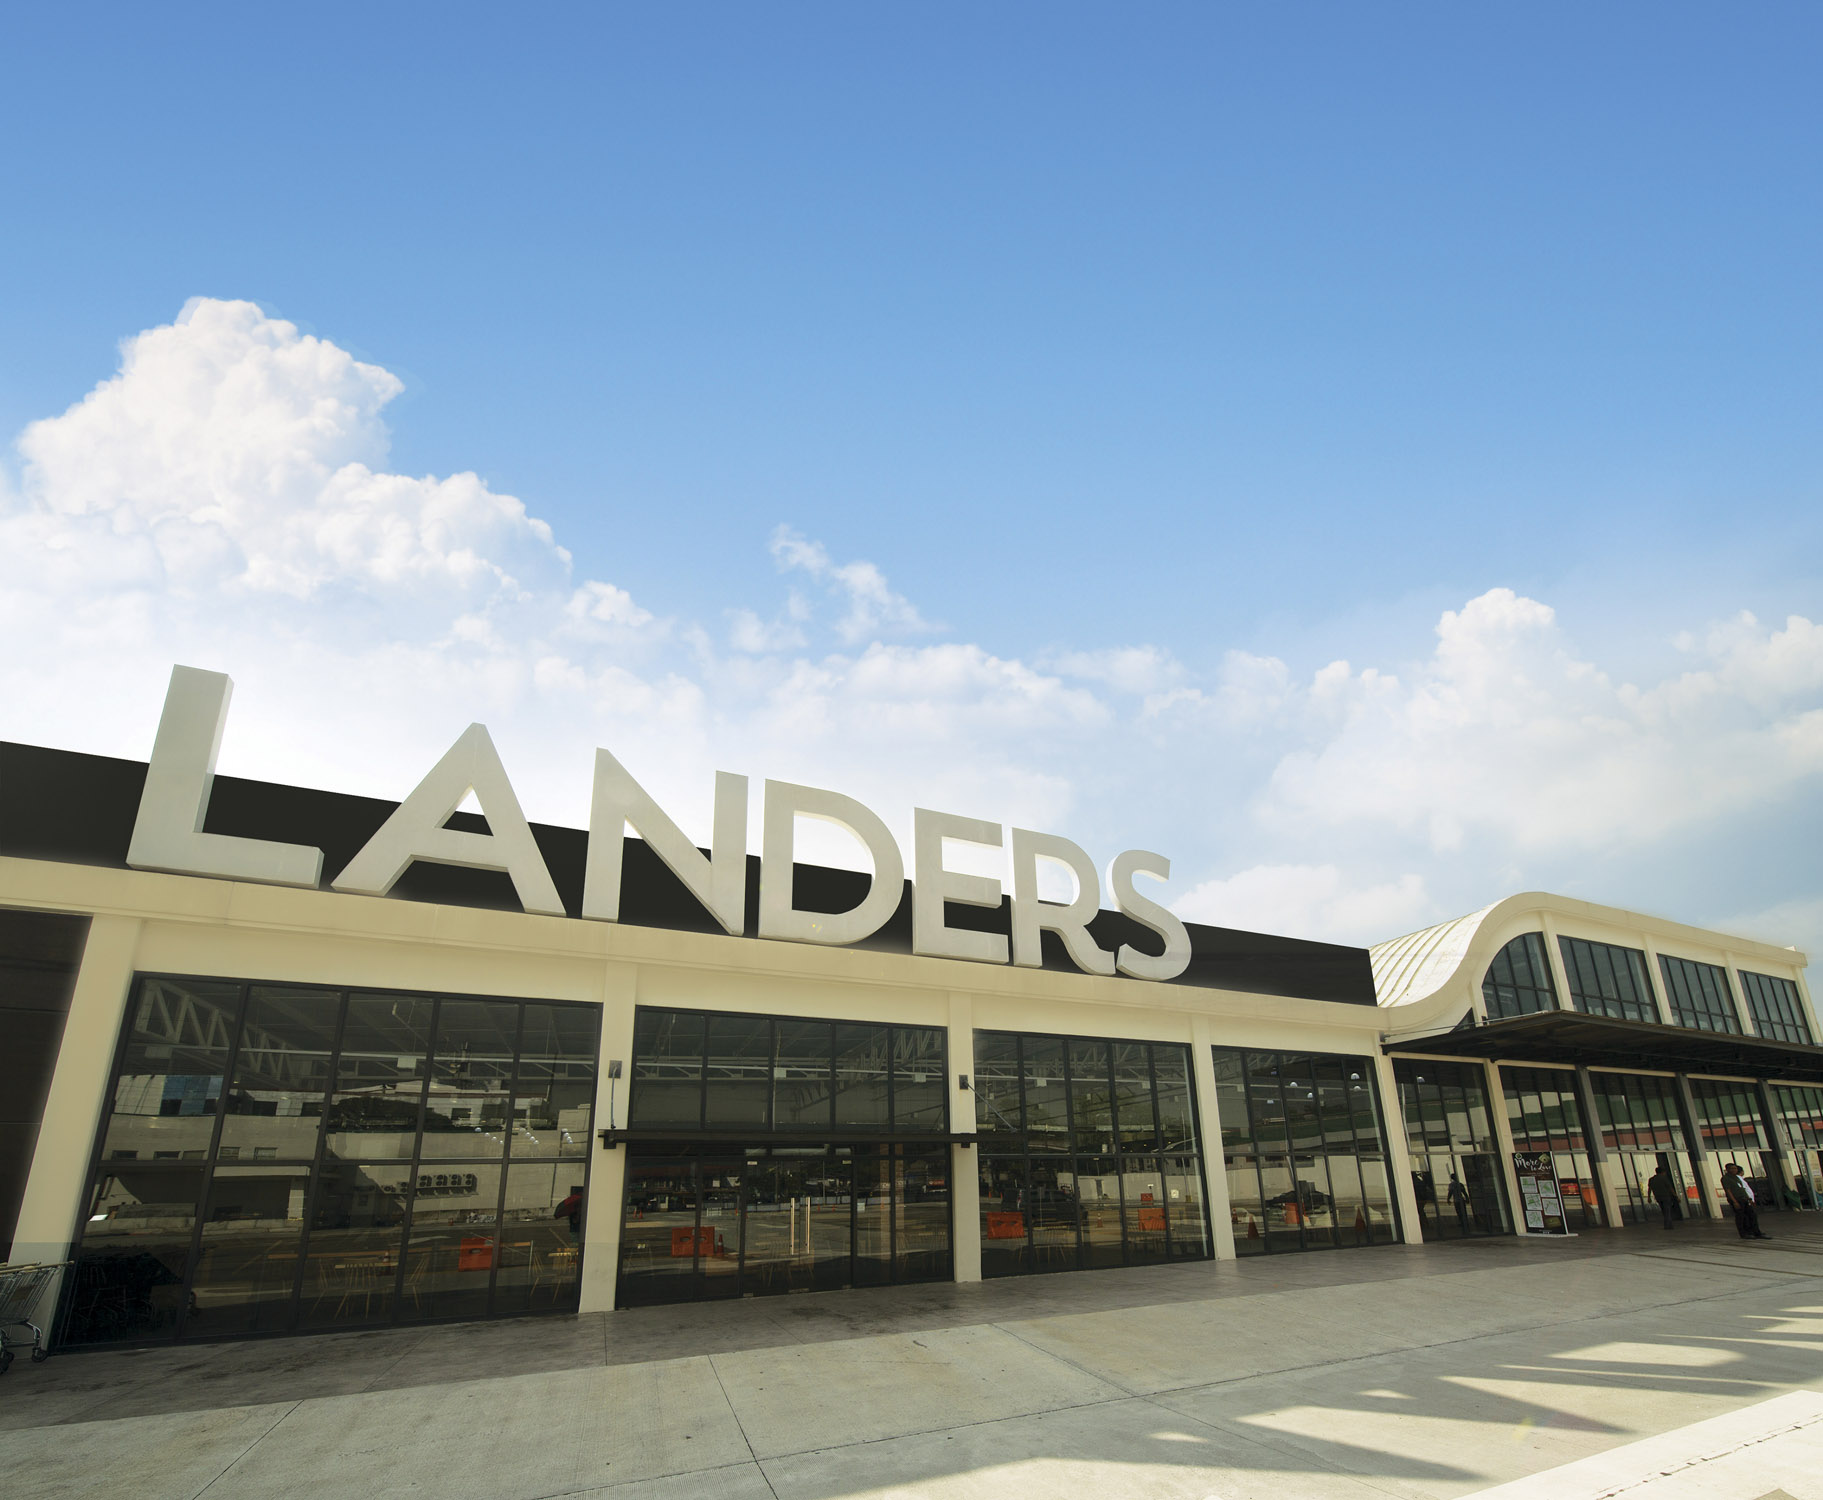 Landers_Alabang West goes super_photo 1